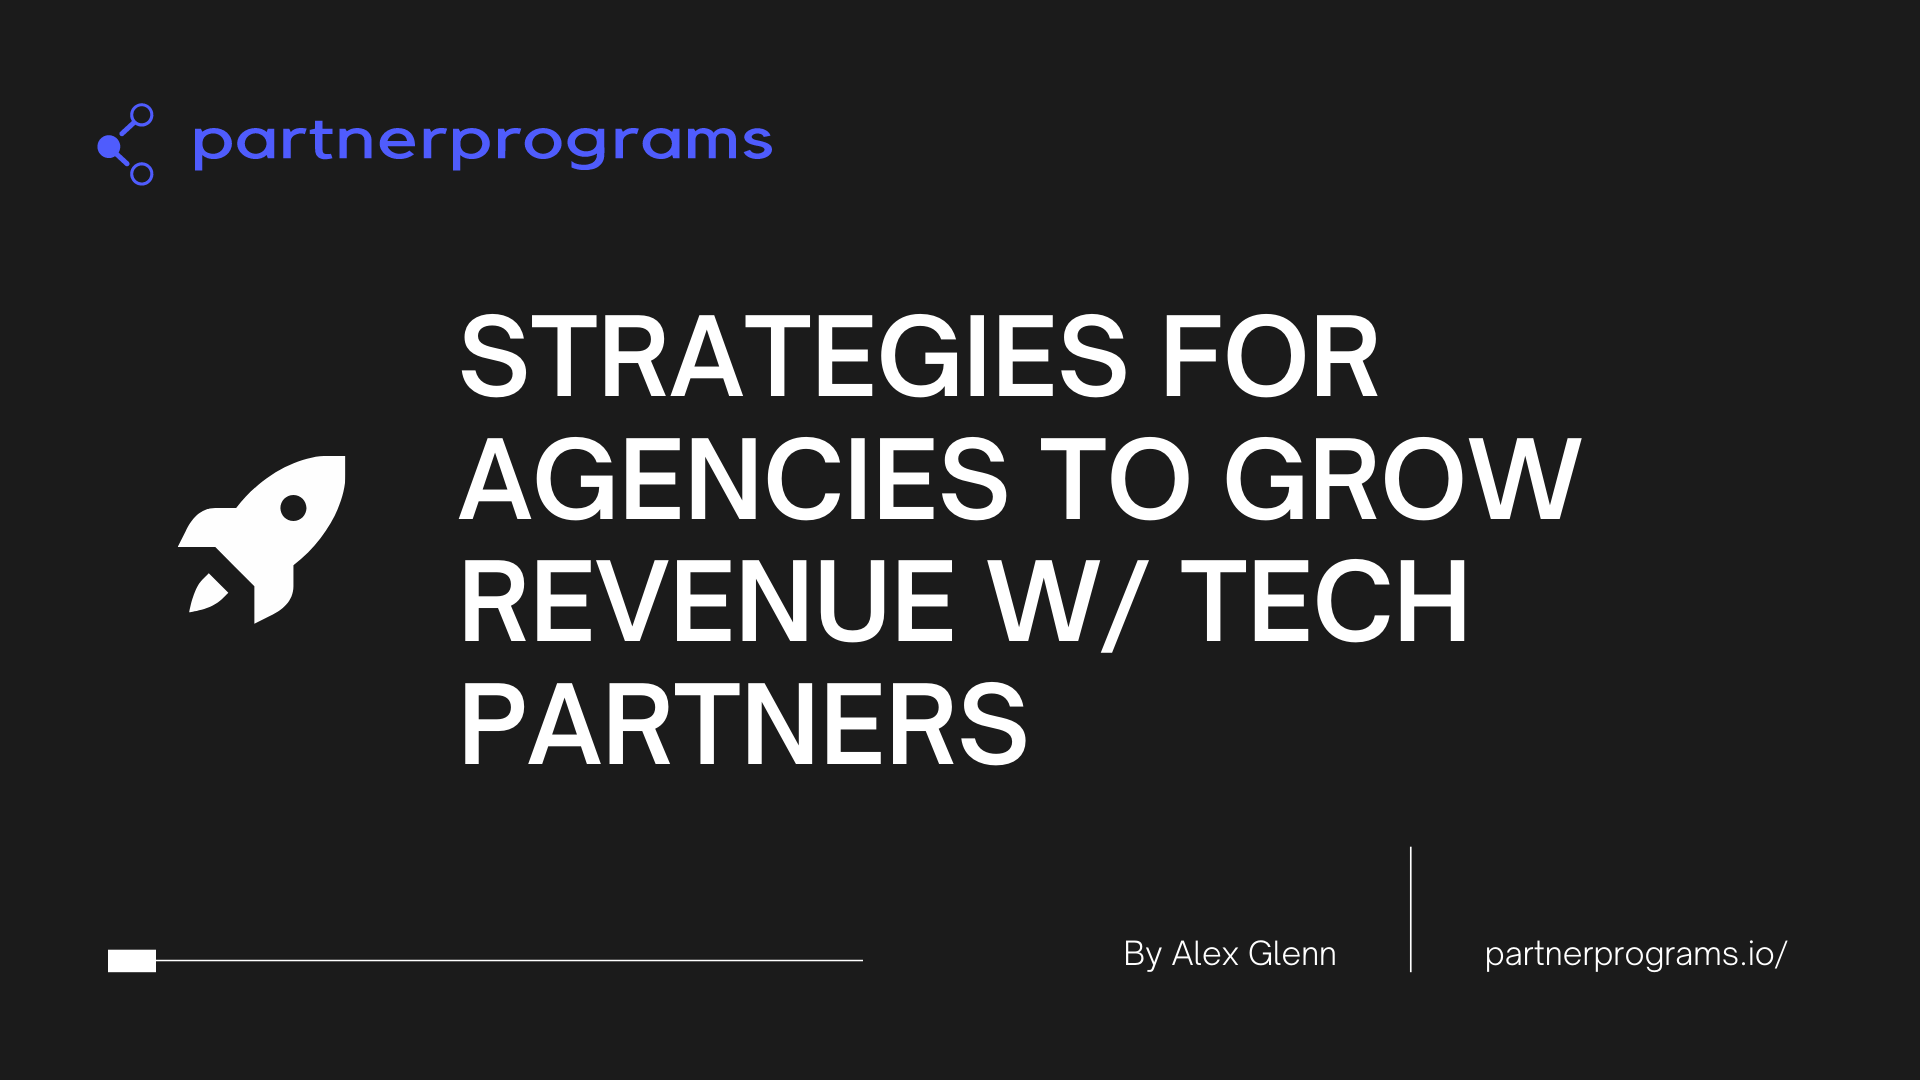 Strategies for Agencies to Grow Revenue w/ Tech Partners